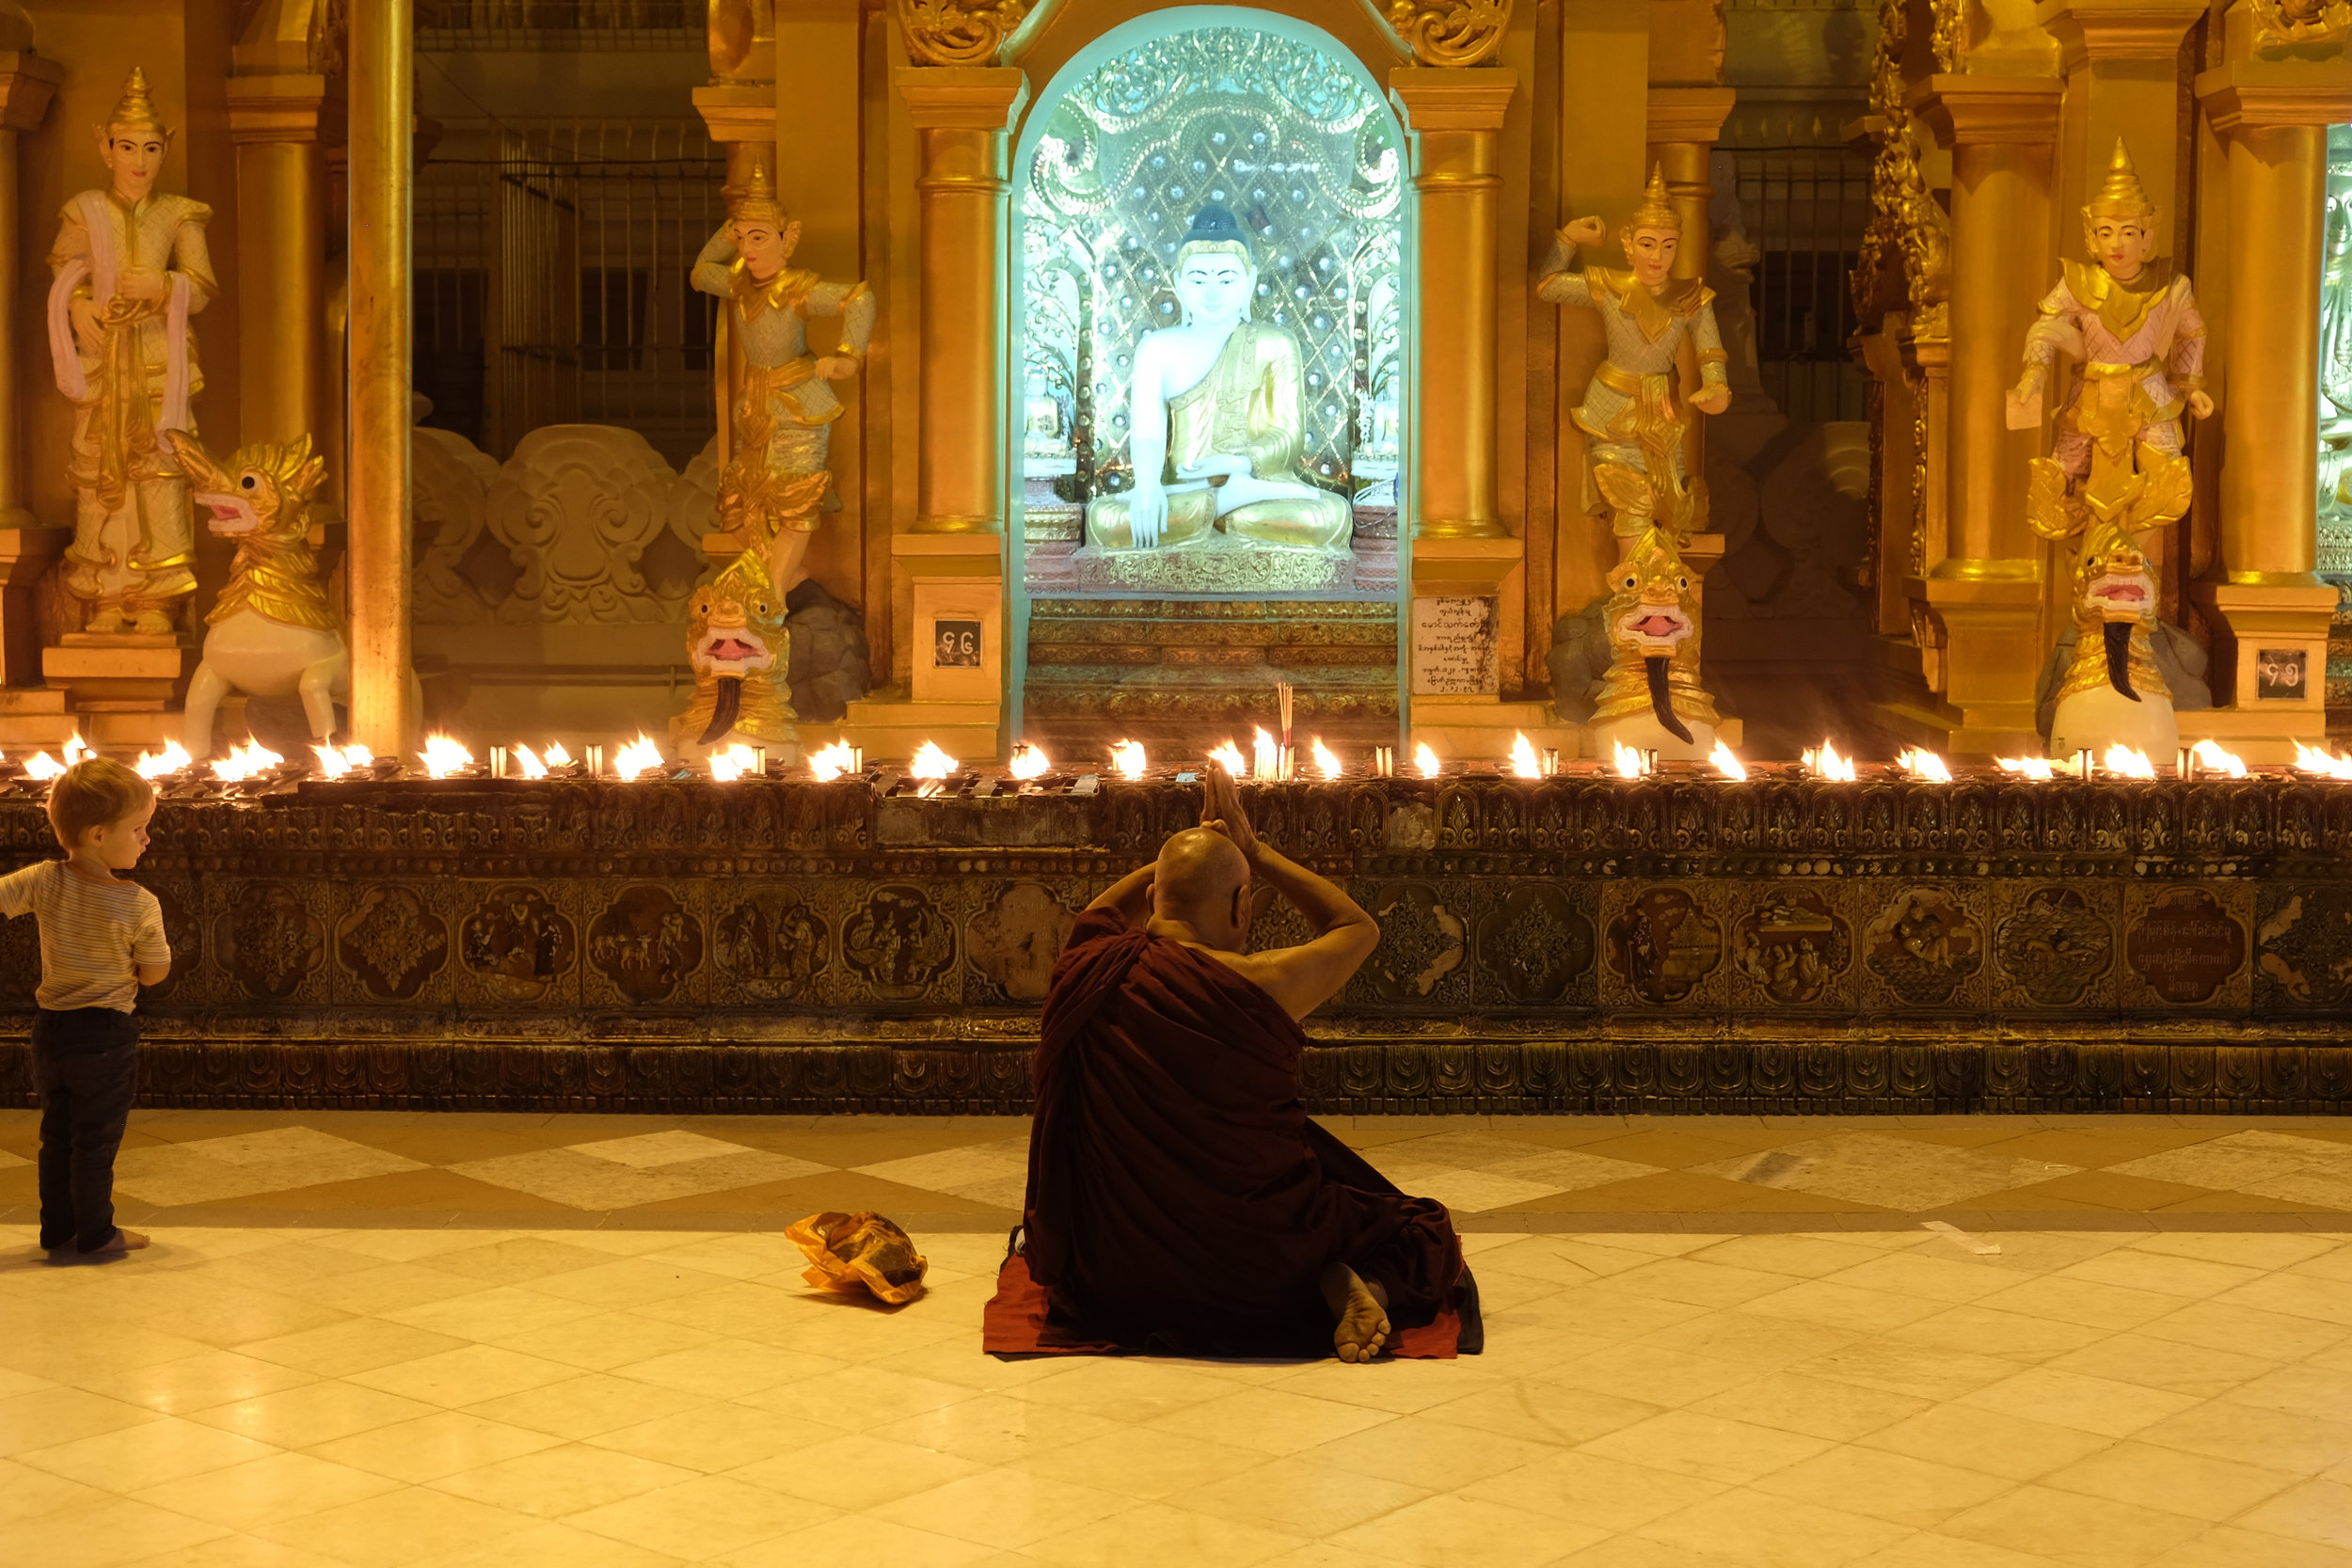 A child looks on as a monk meditates